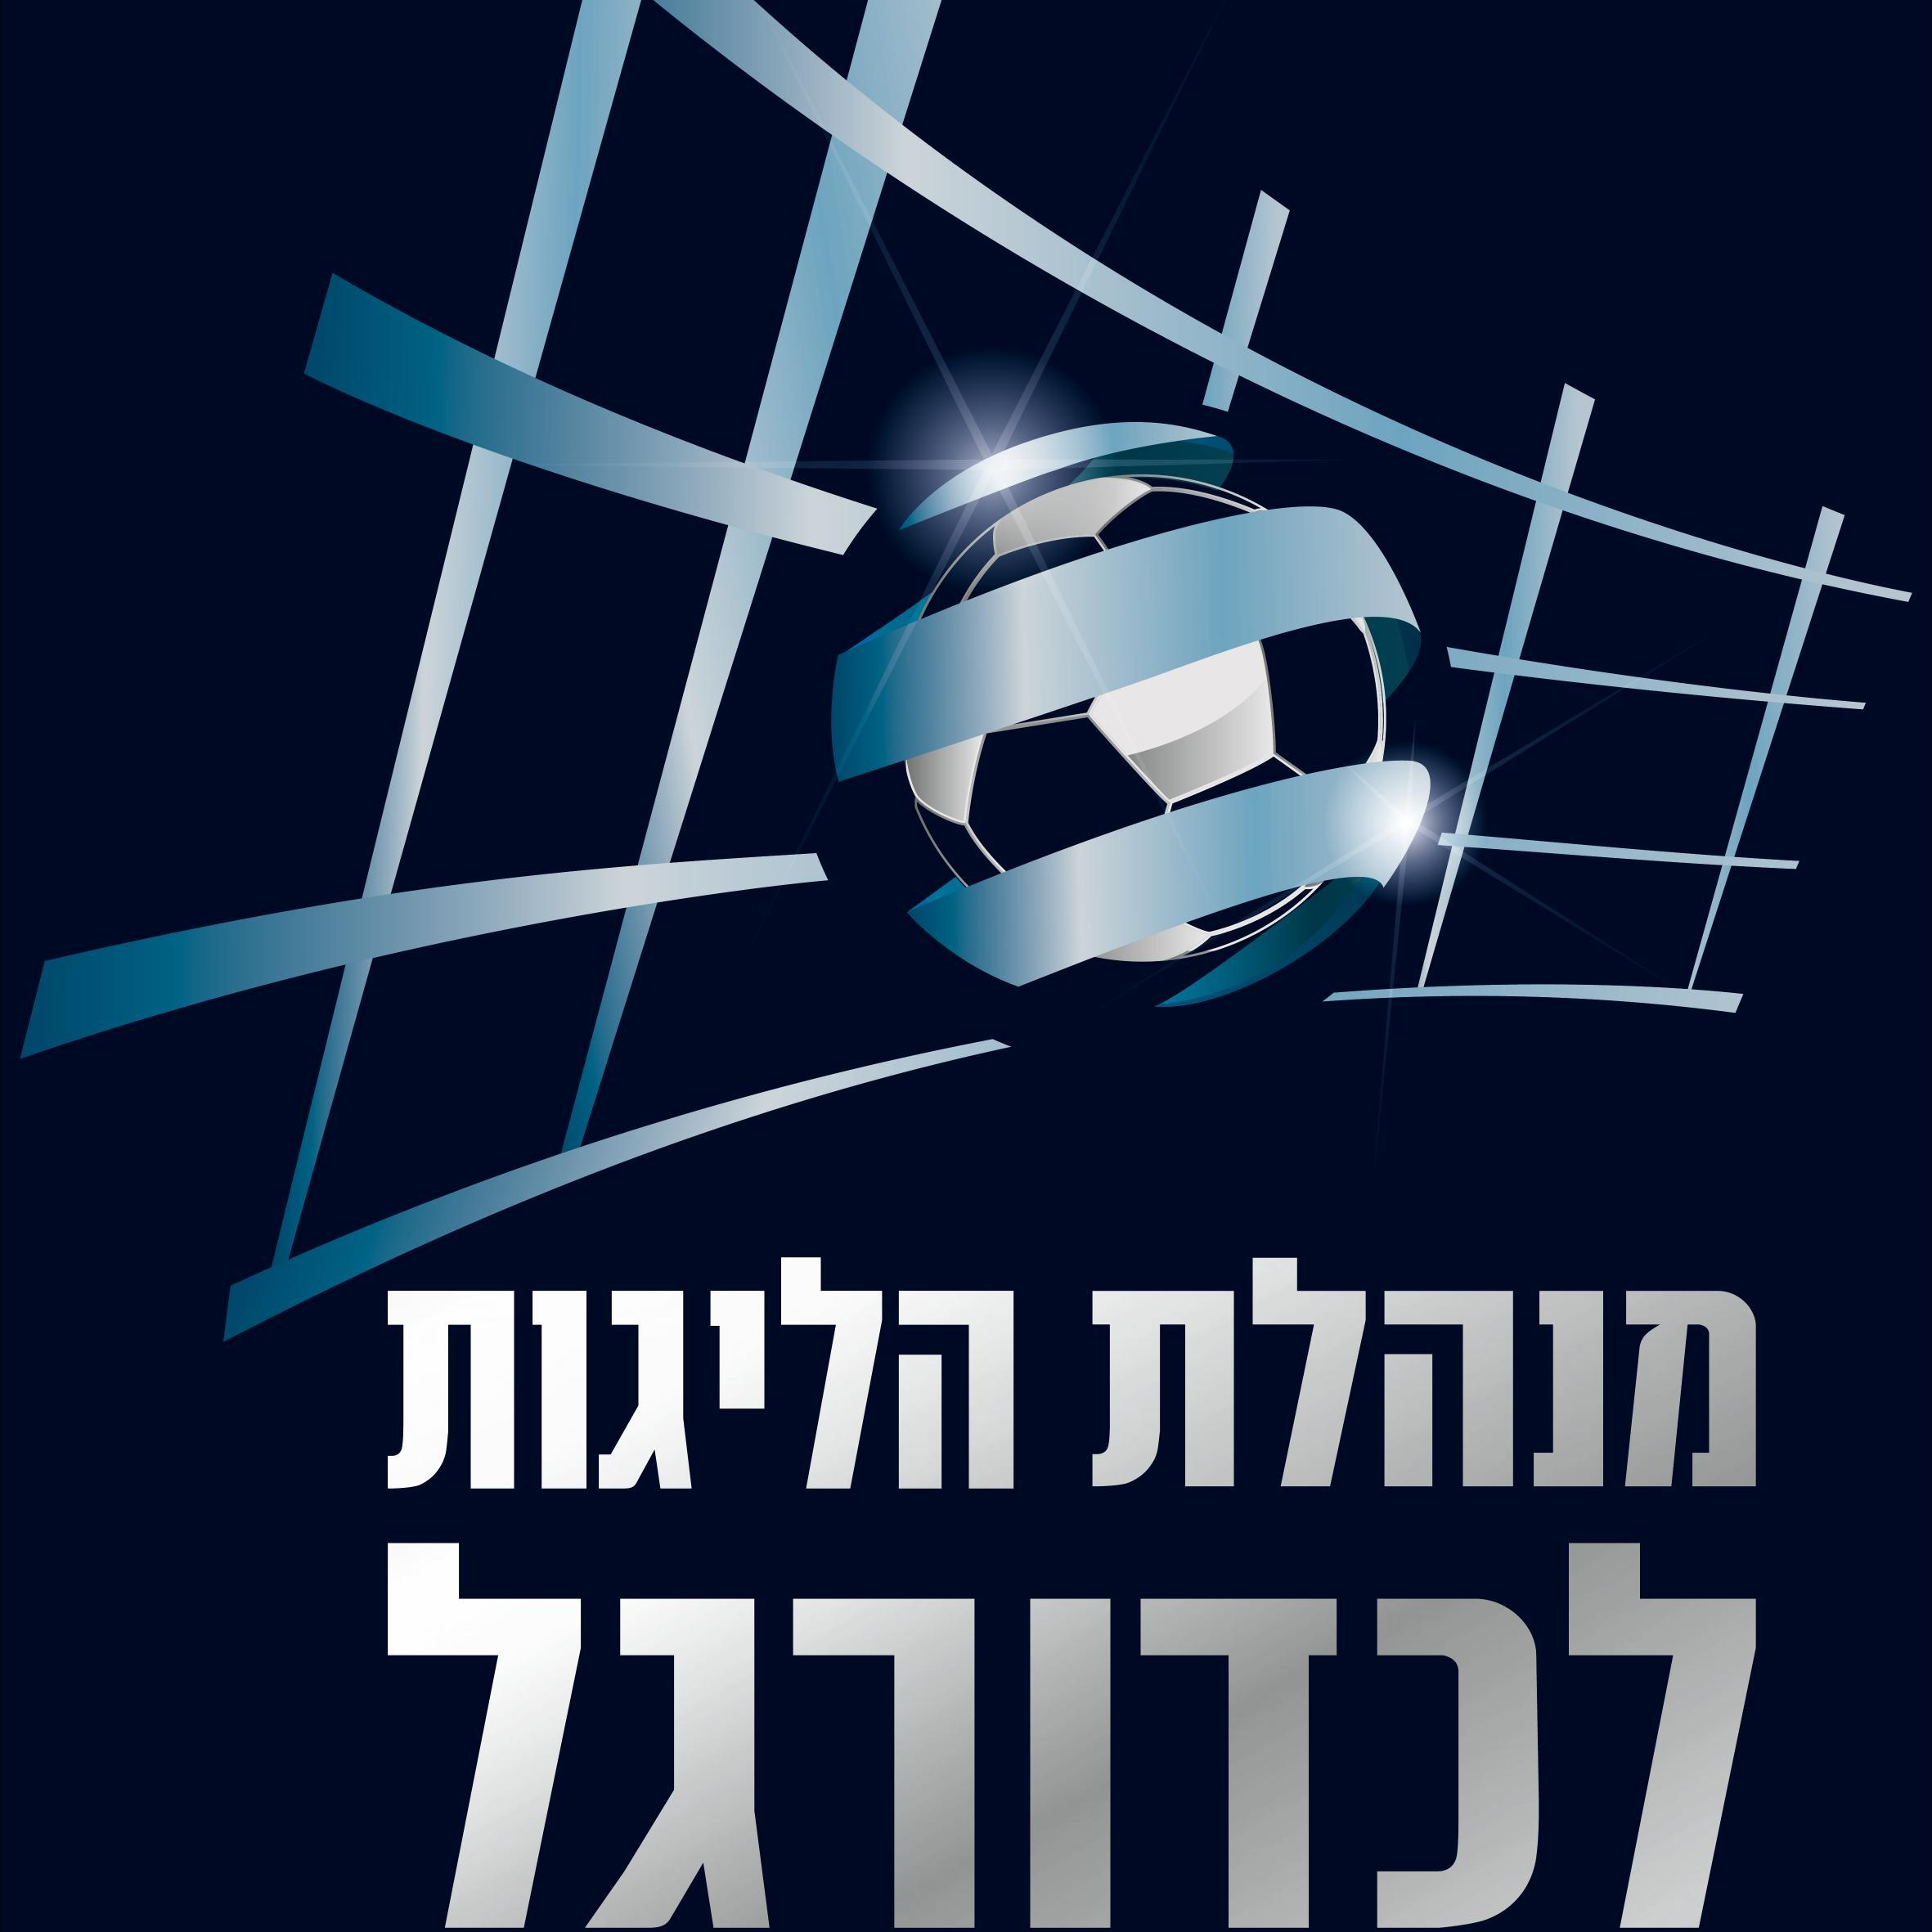 Israel Pro Football Leagues